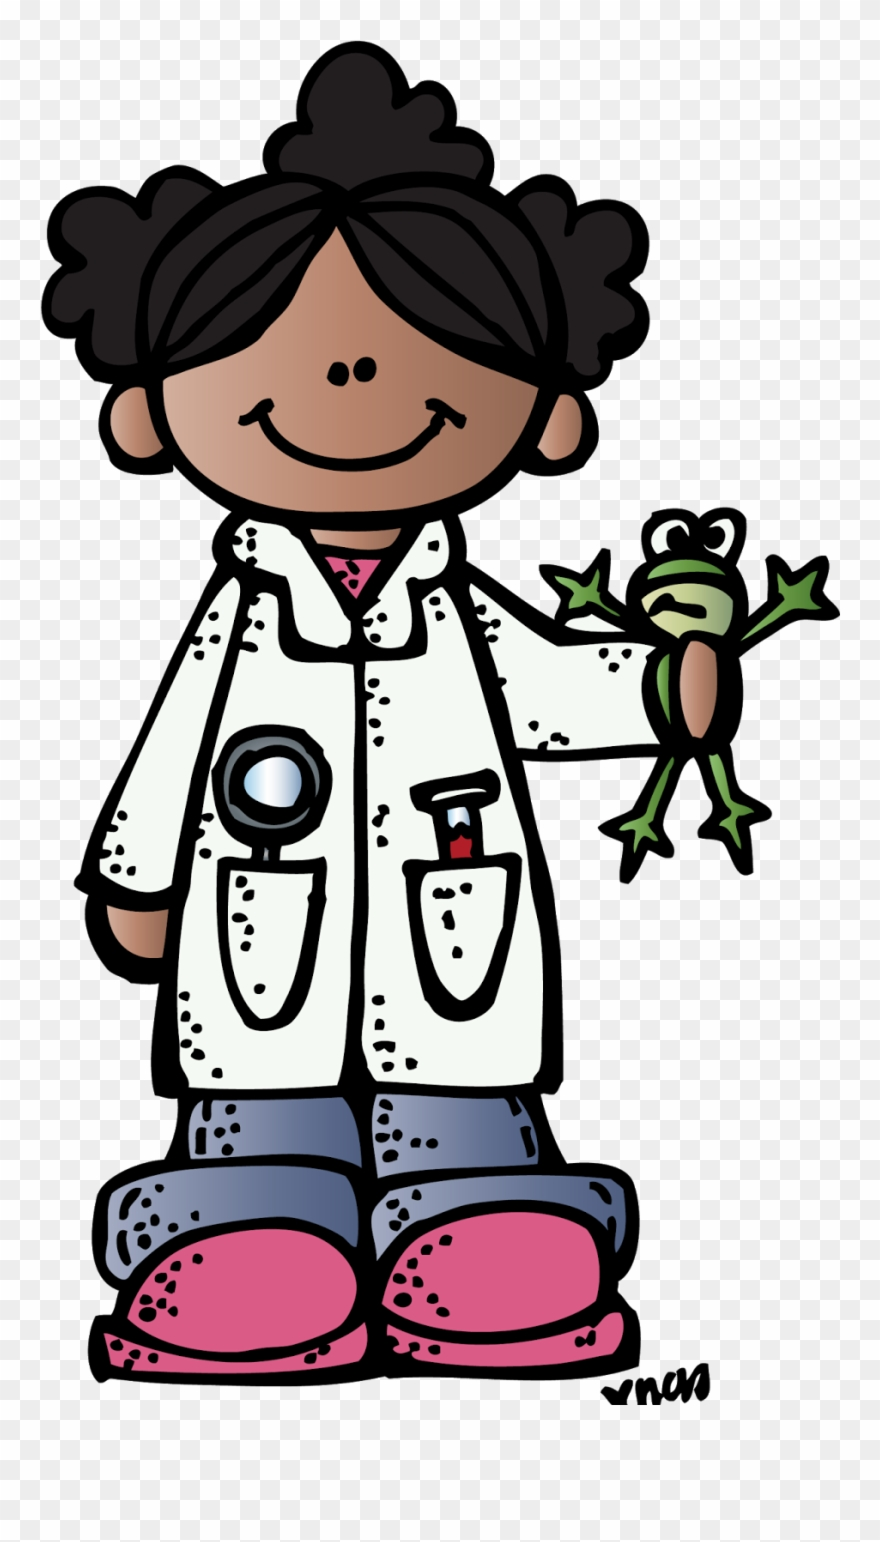 google educlips drawing. Melonheadz clipart science